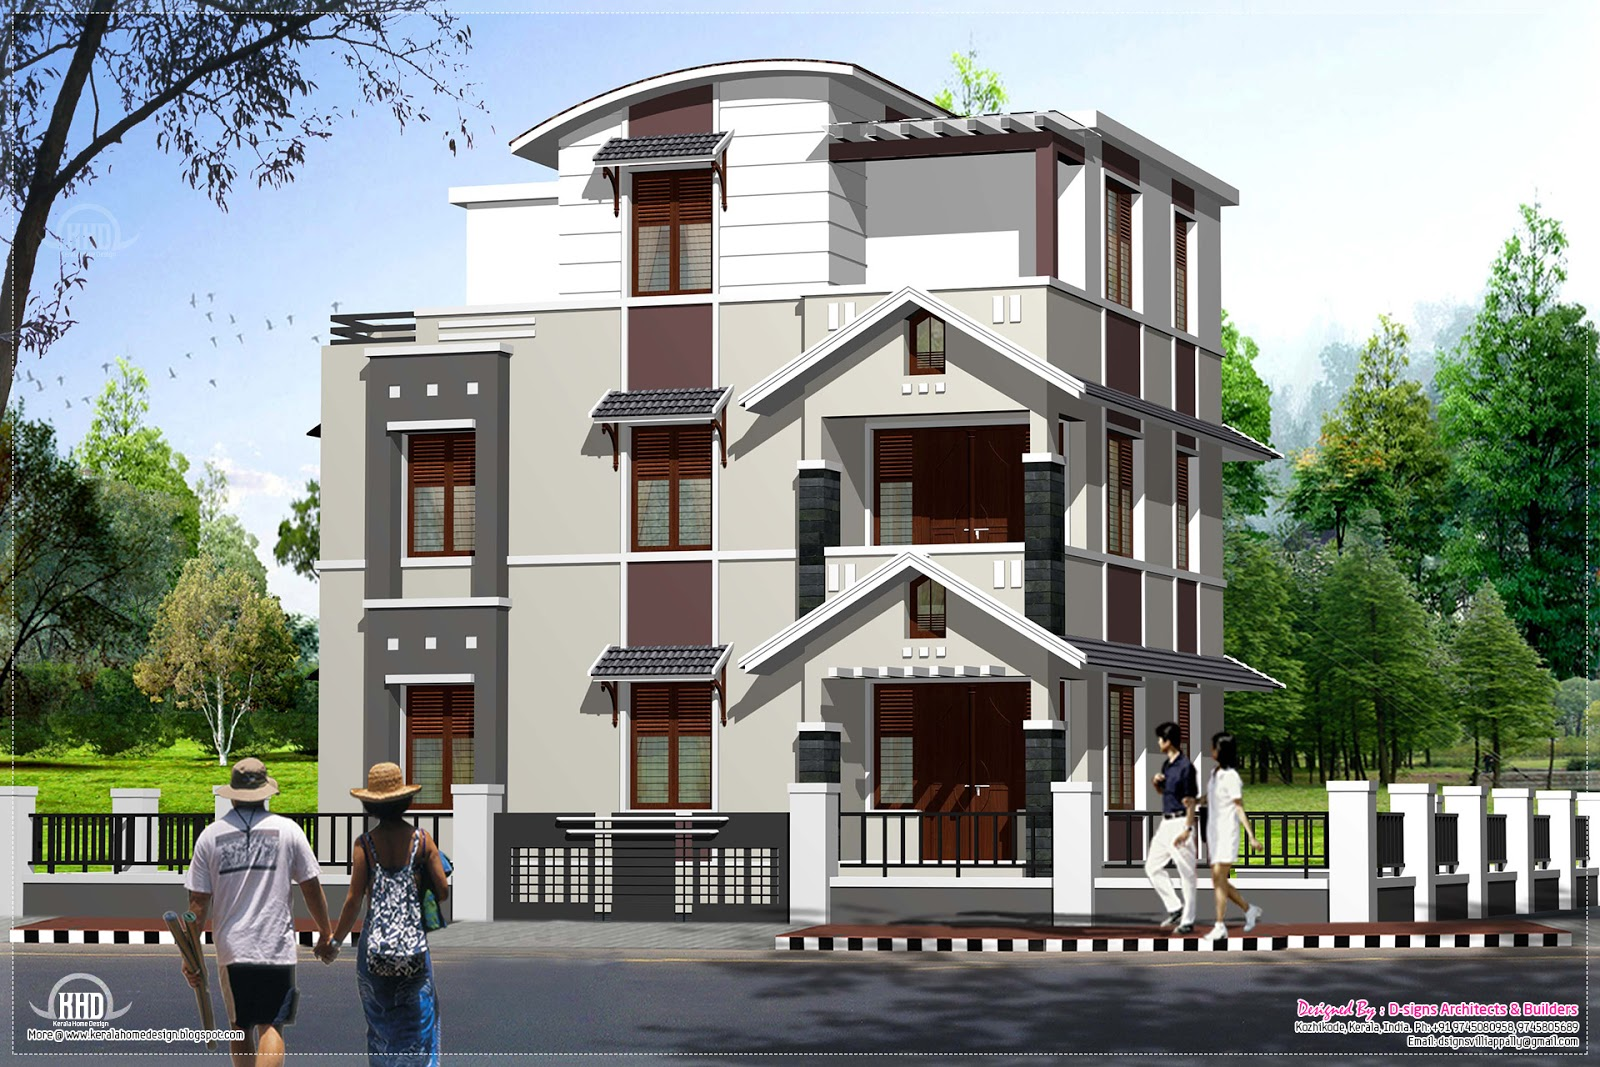 3 Storey Villa. Facilities In This House